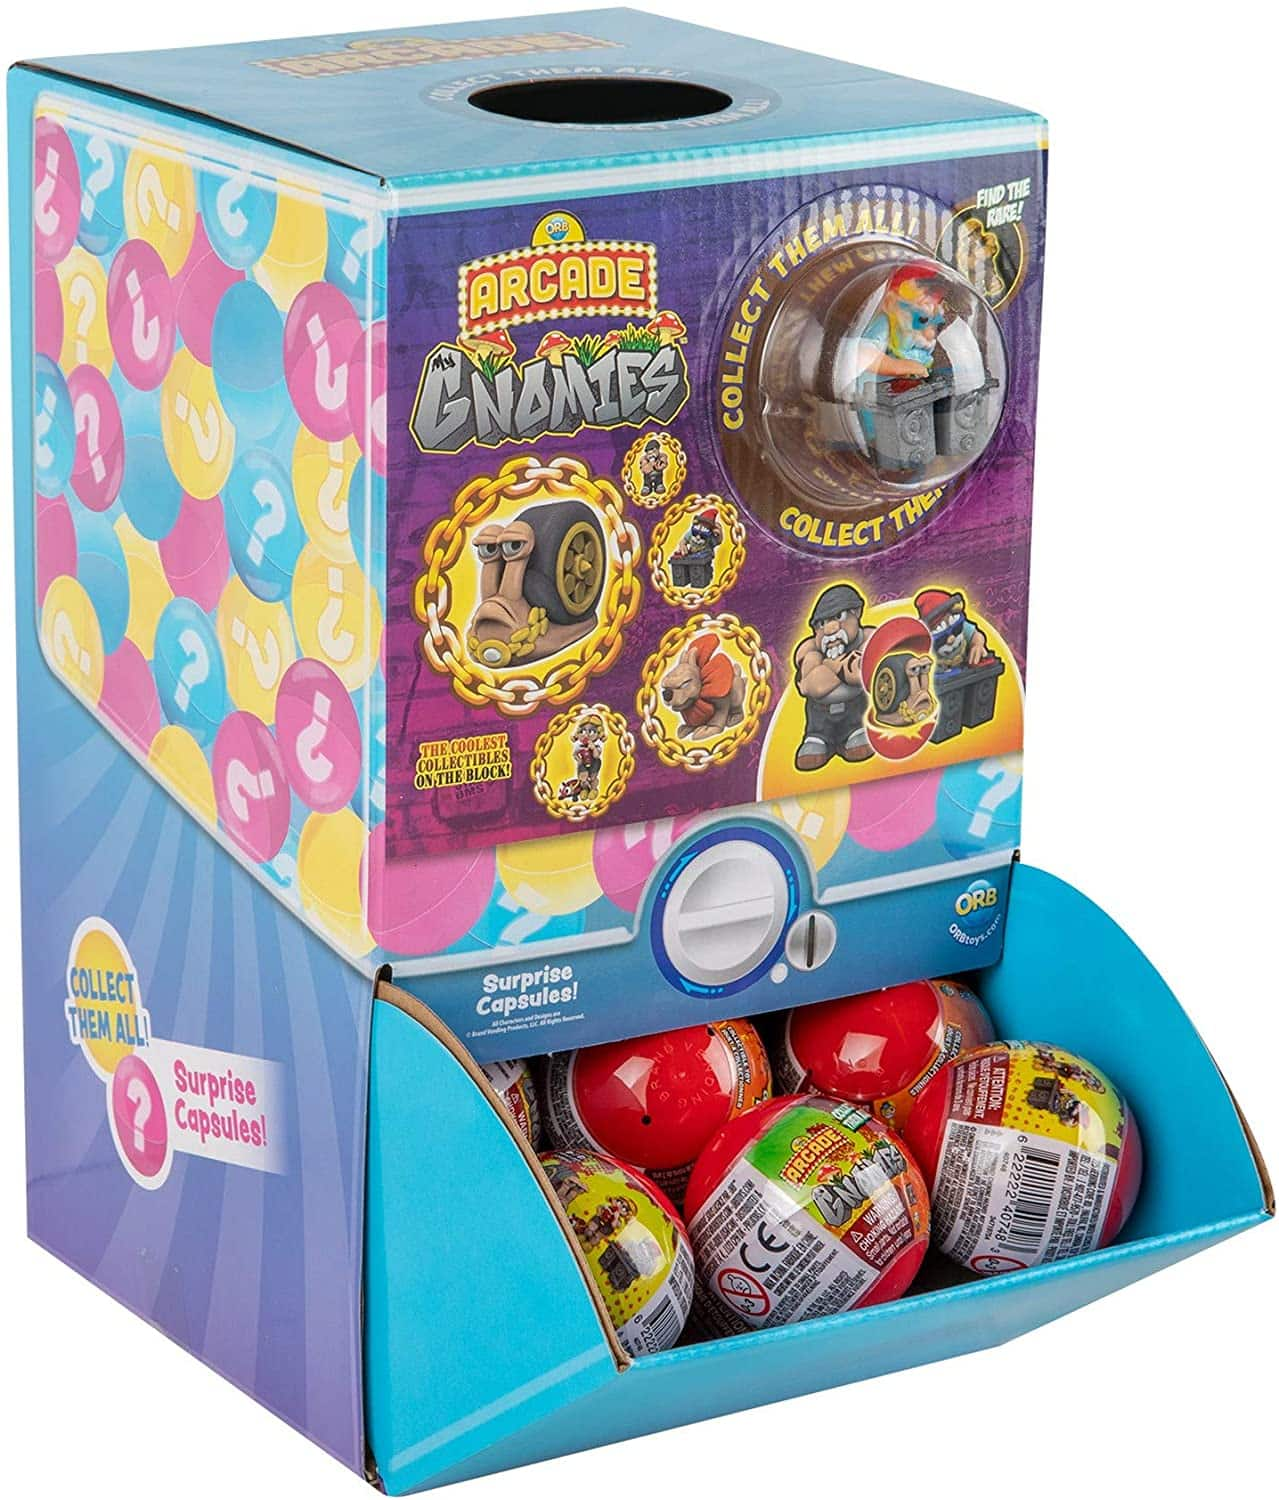 48-Capsule Display Orb Arcade Gnomies Capsules  $26.39 + Free Shipping w/ Prime or on $25+